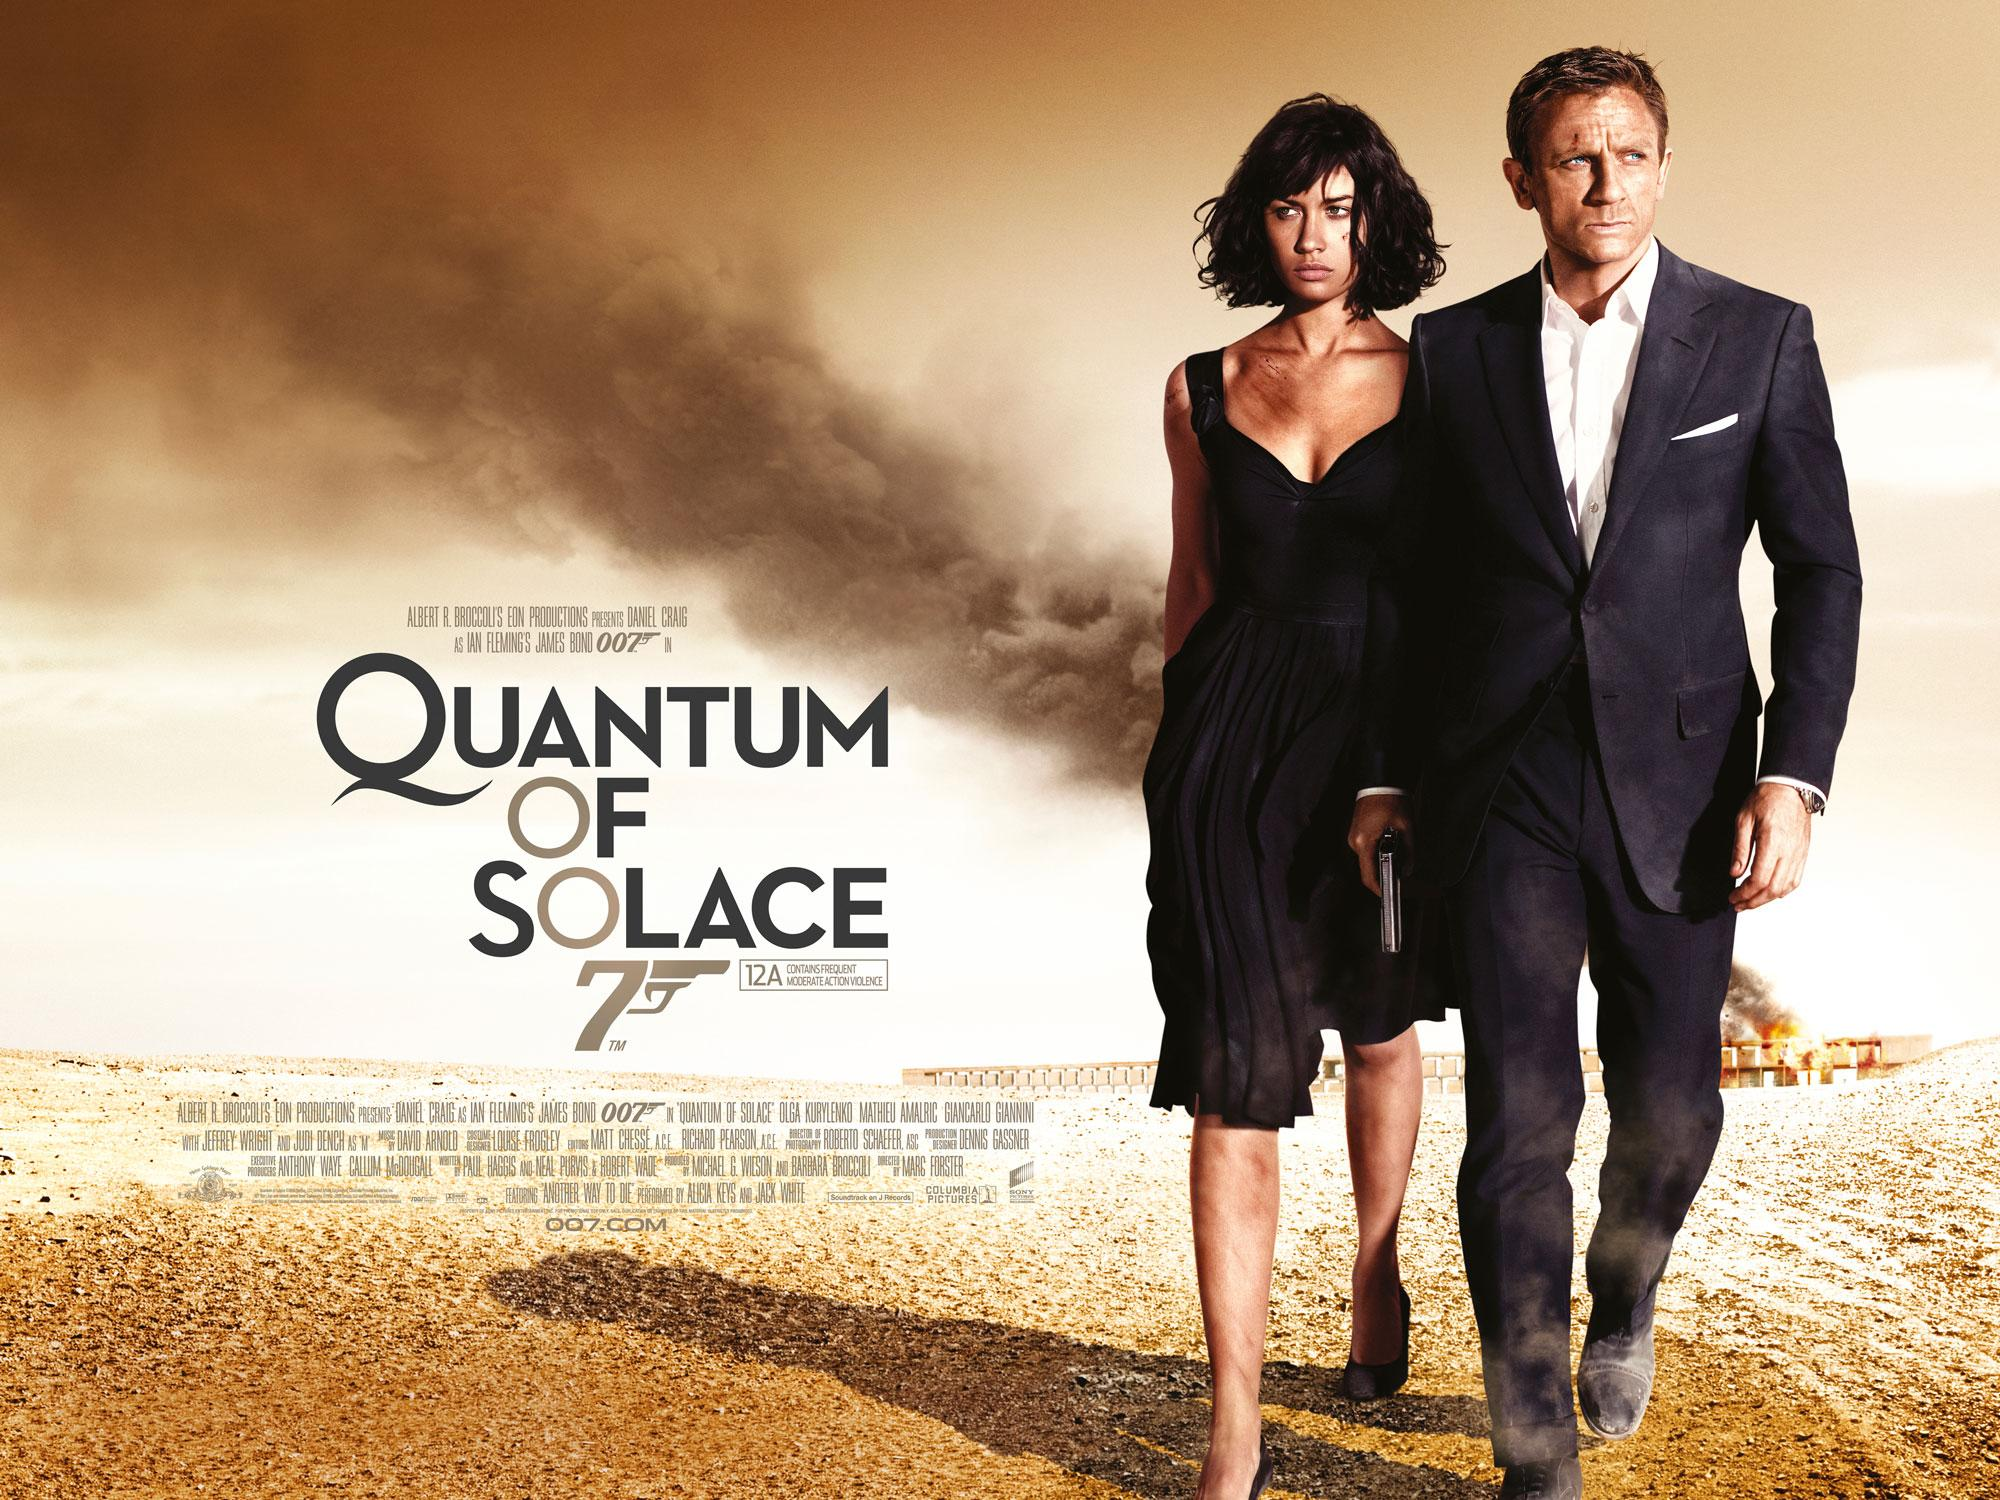 like 007 himself james bond movie posters live to see another day wfae. Black Bedroom Furniture Sets. Home Design Ideas